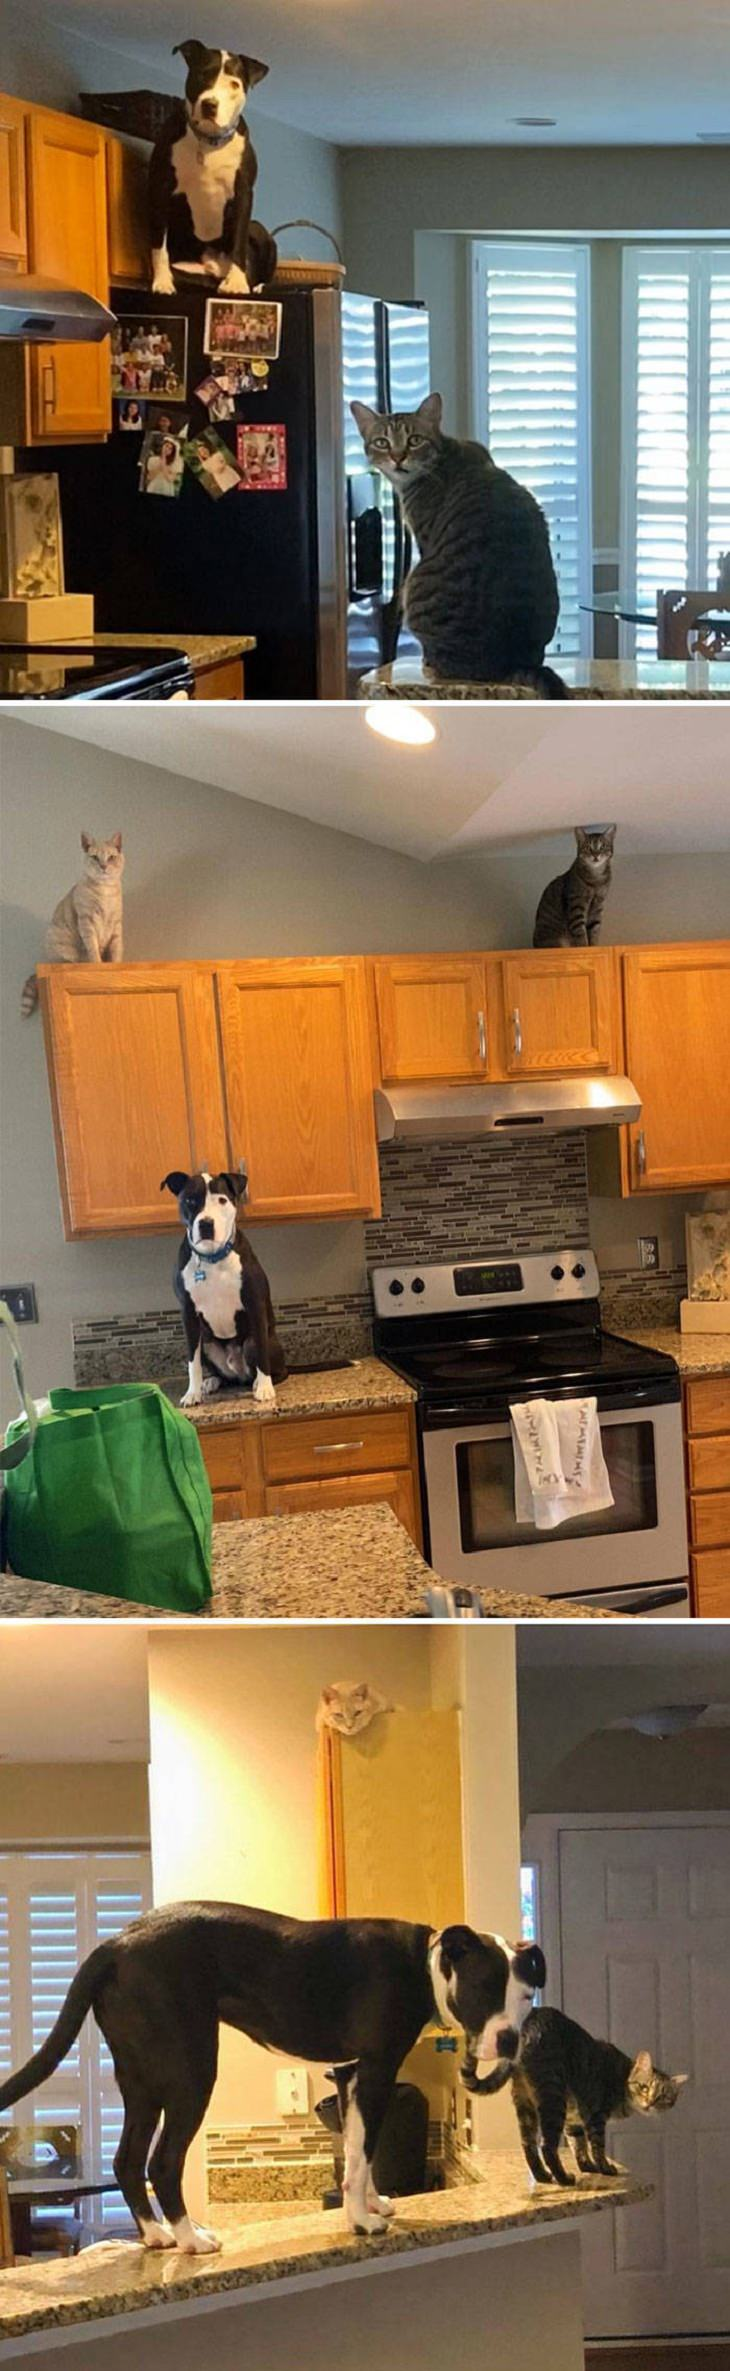 Dogs Believe They Are Cats, cat stuff